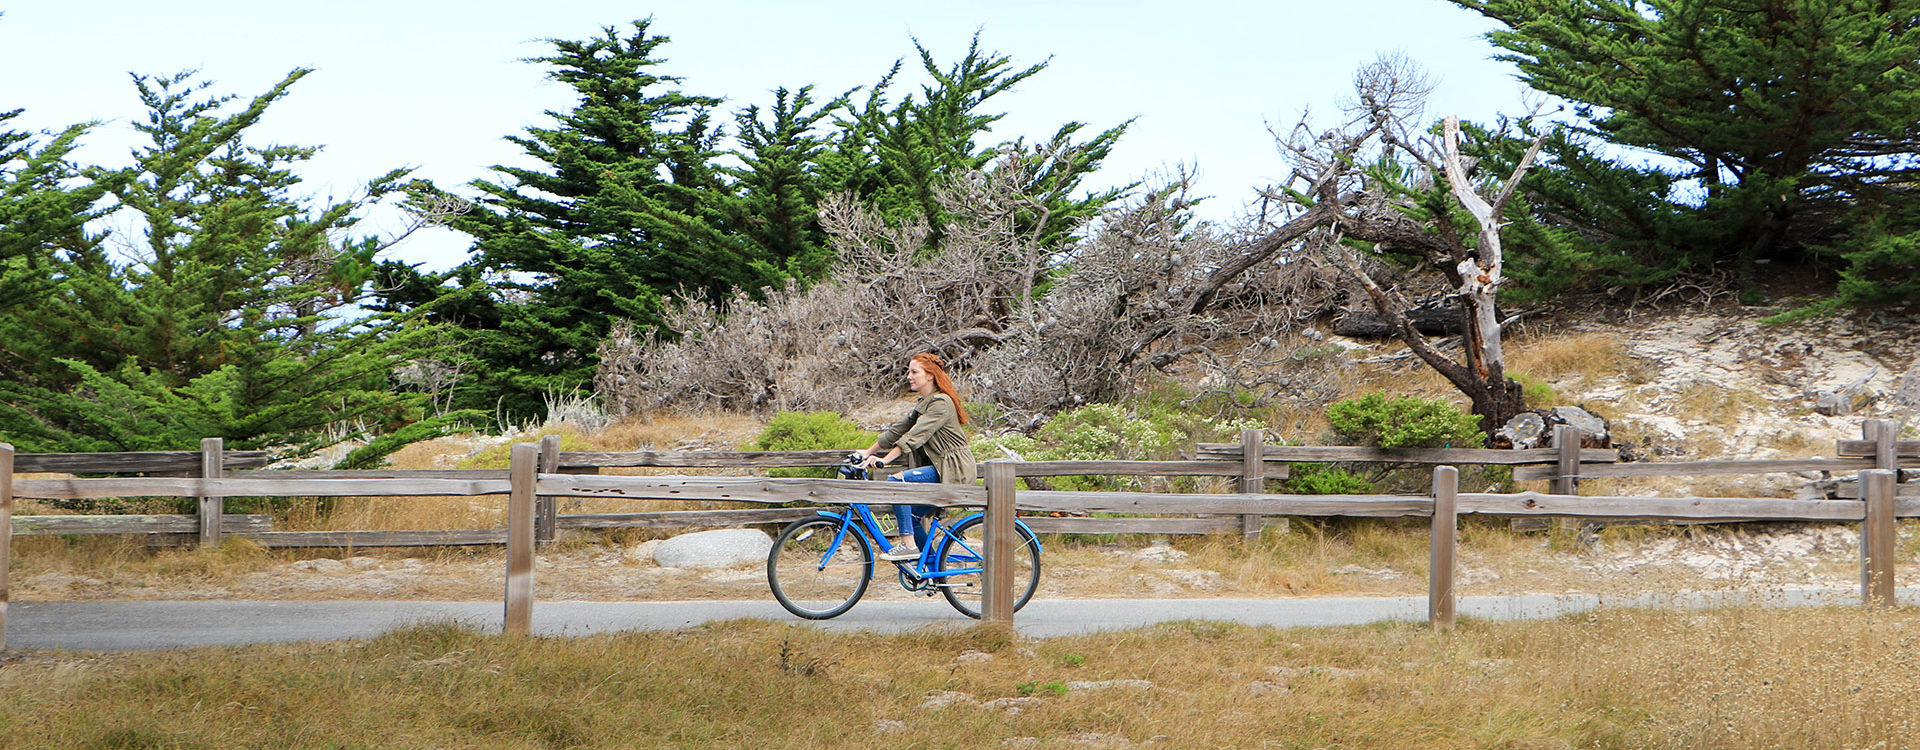 Biking the Monterey Bay Coastal Recreation Trail